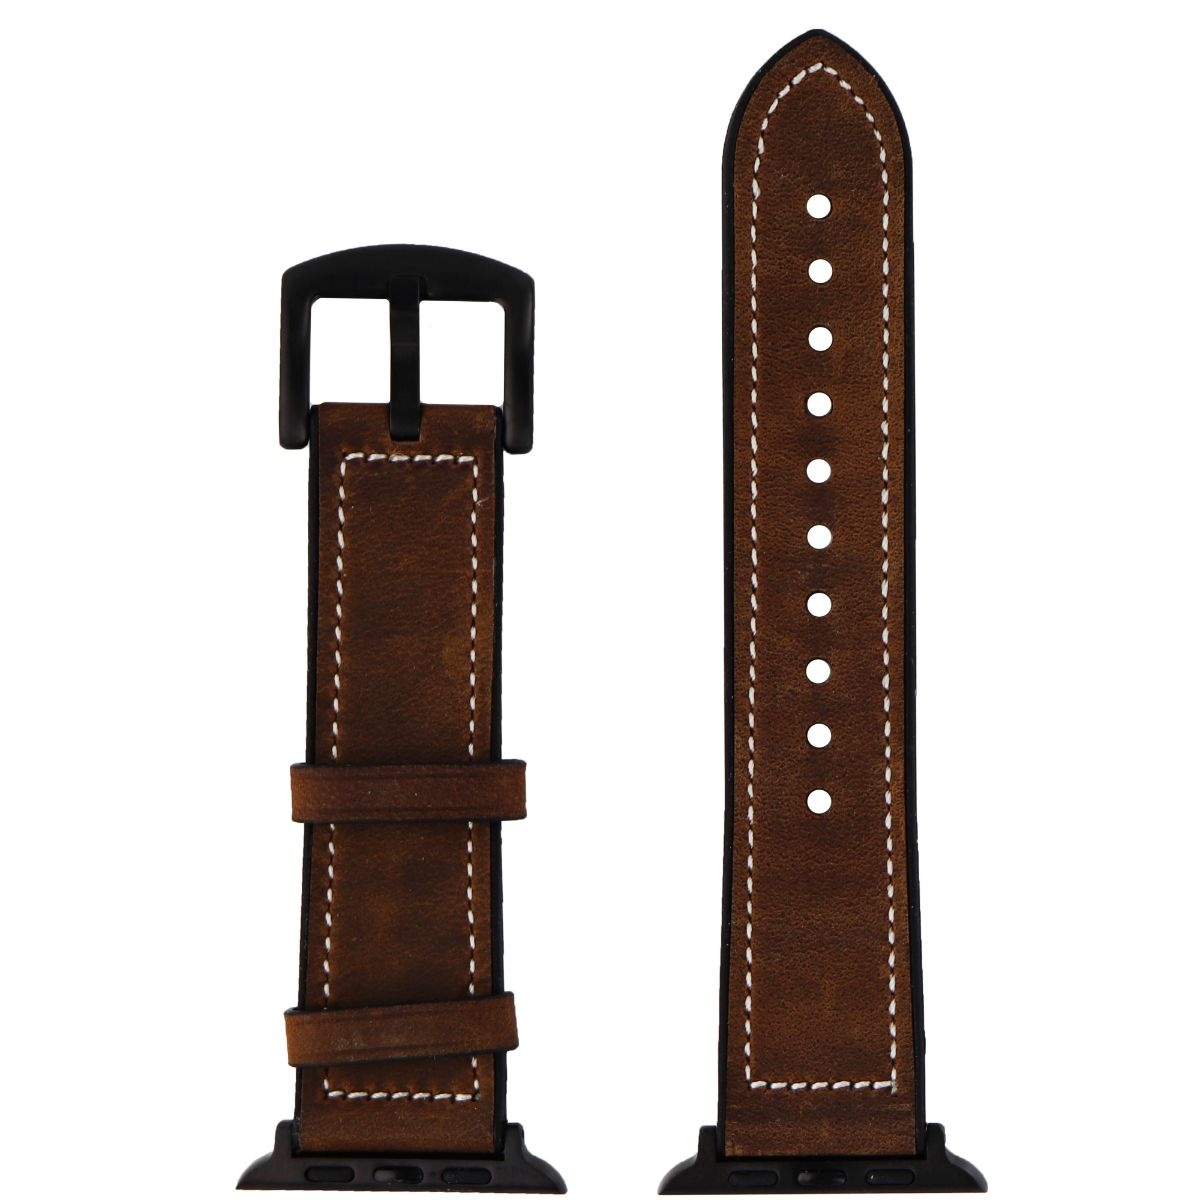 NEXT - Hybrid Leather / Silicone Watch Strap for Apple Watch 42mm + 44mm - Brown